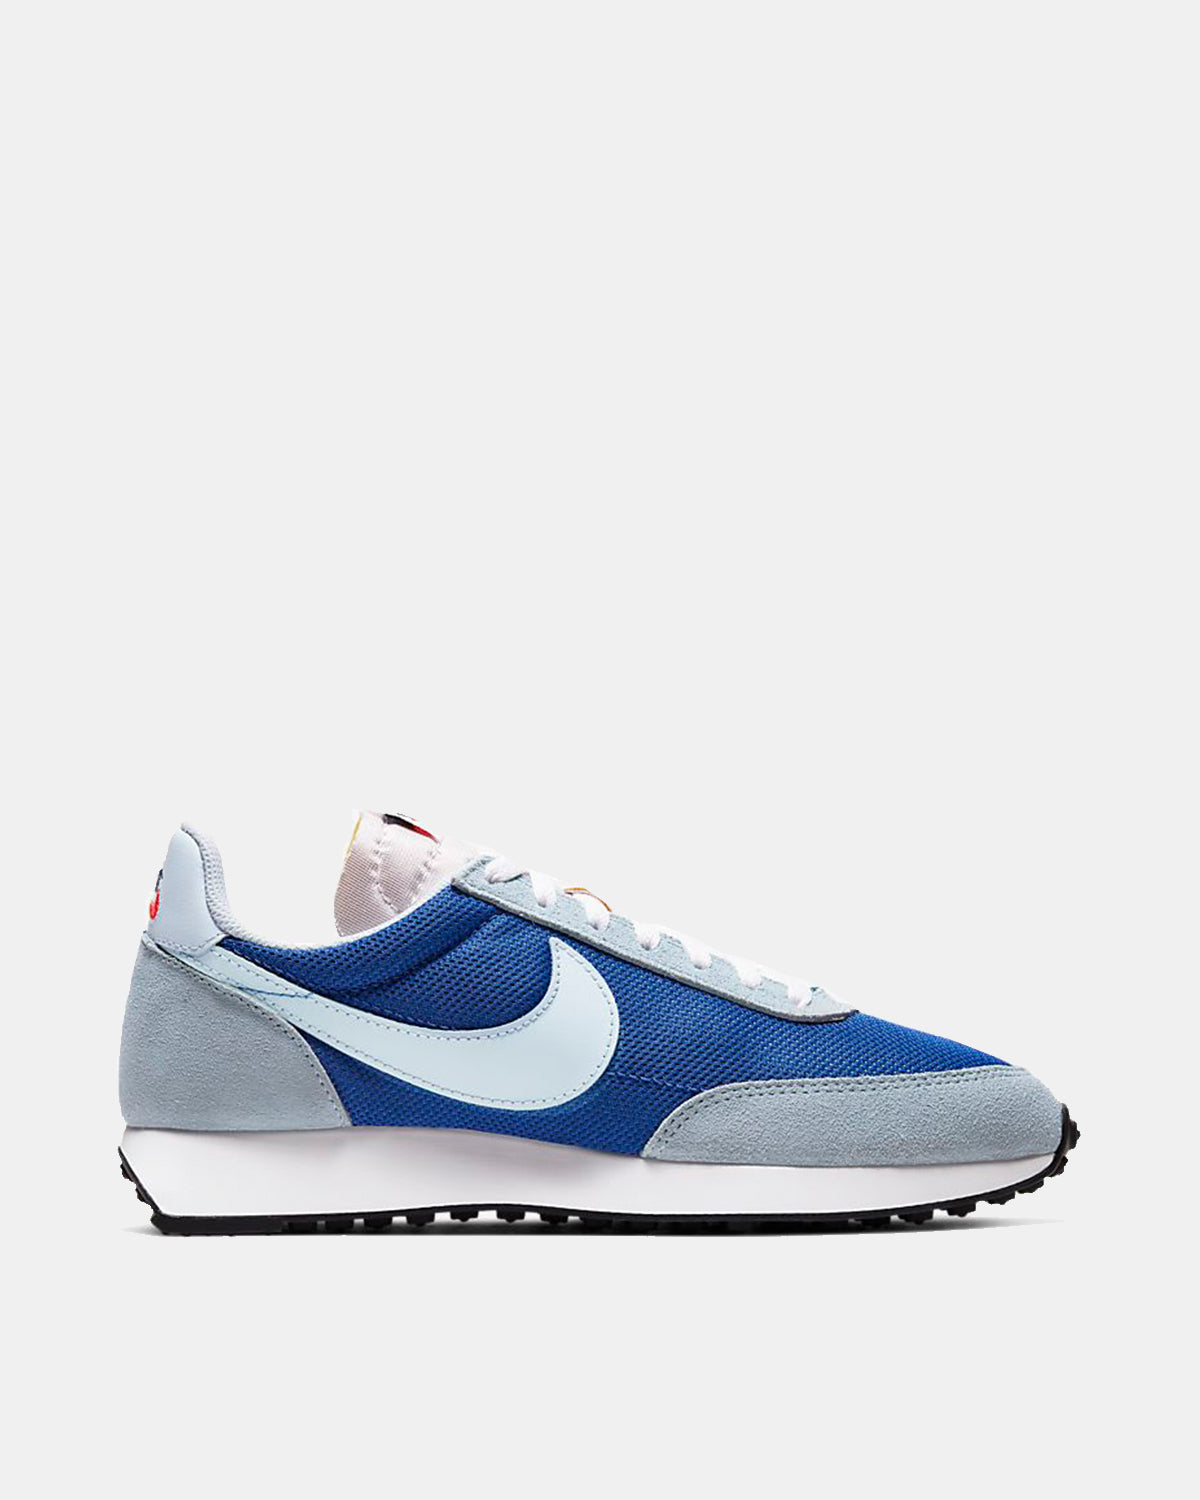 Air Tailwind 79 (Game Royal | Hydrogen Blue | White)